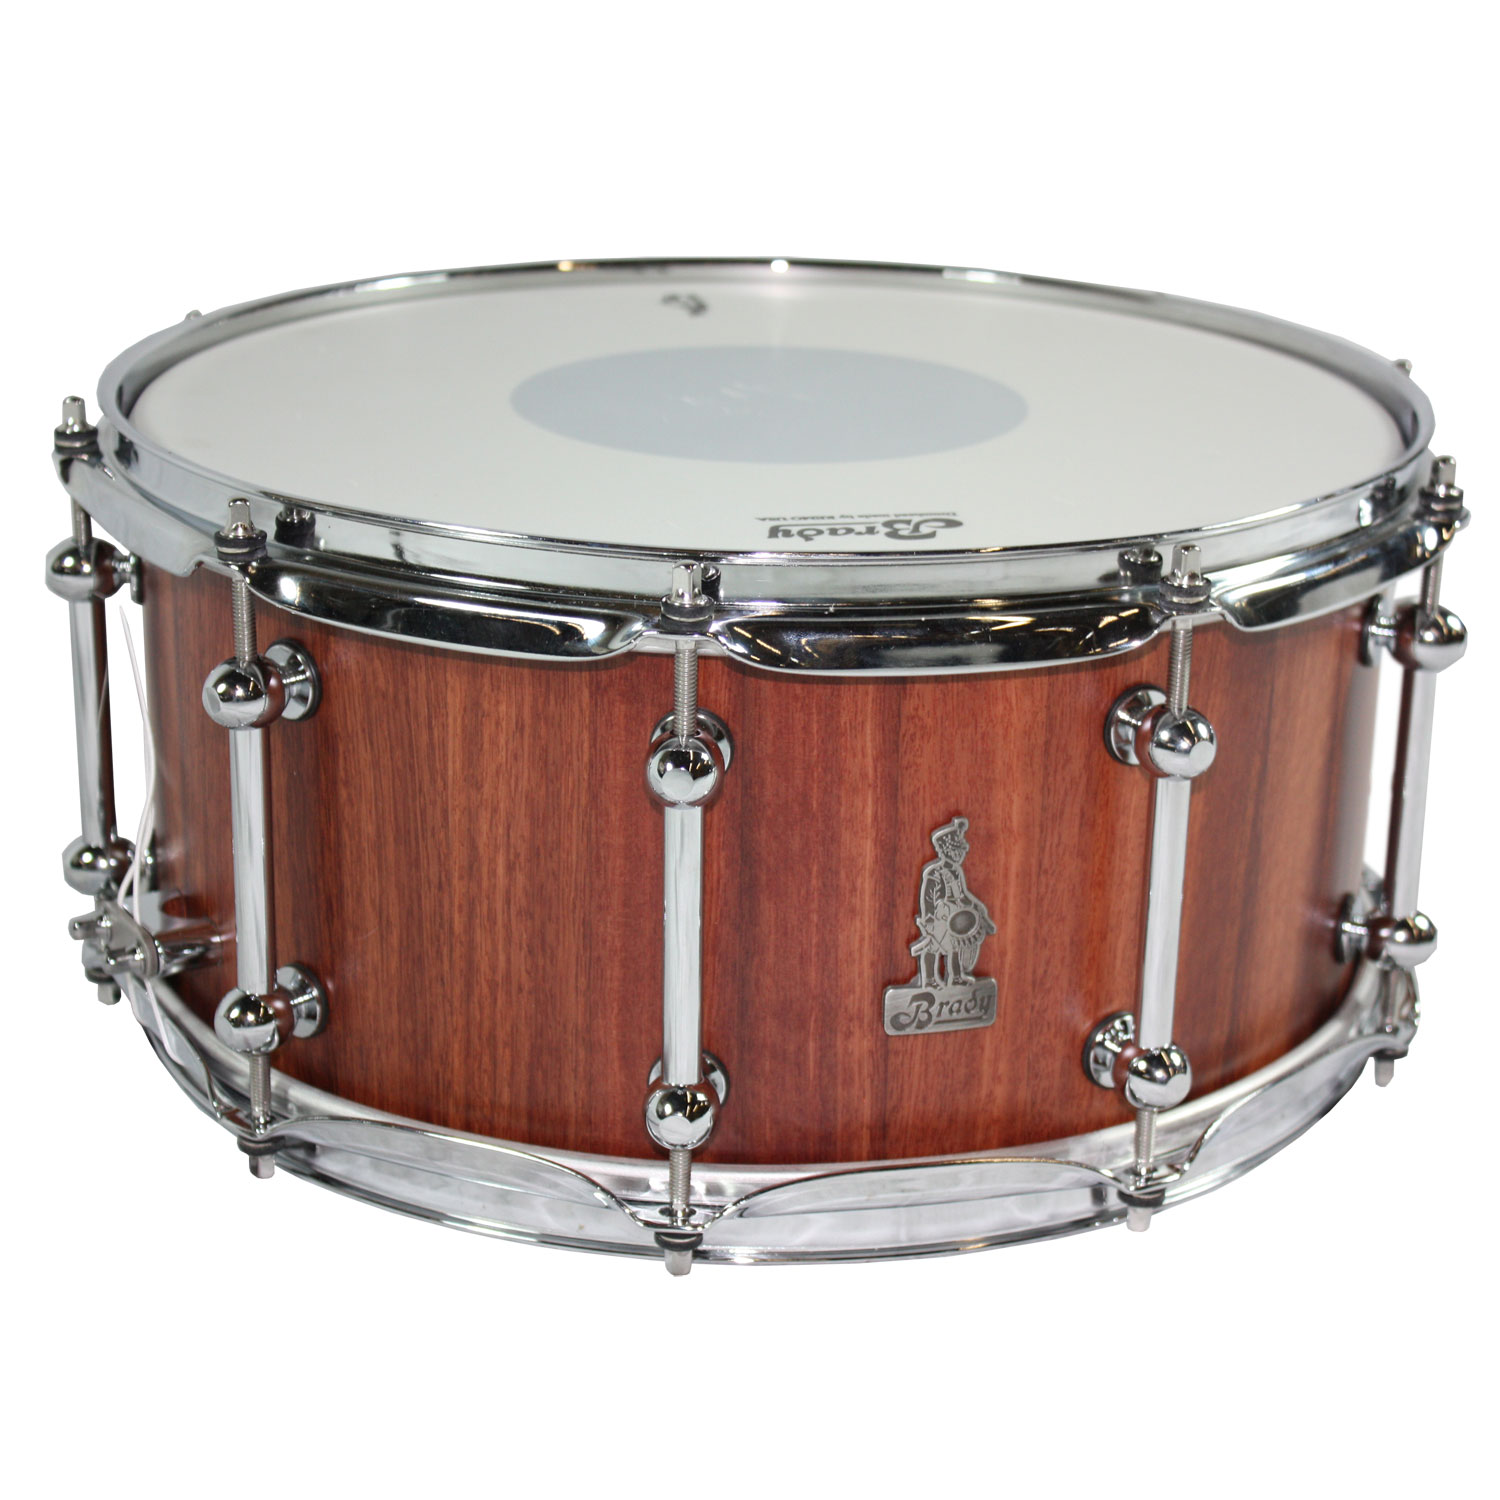 snare drums tama dynamicx pearl gretsch lone star percussion. Black Bedroom Furniture Sets. Home Design Ideas